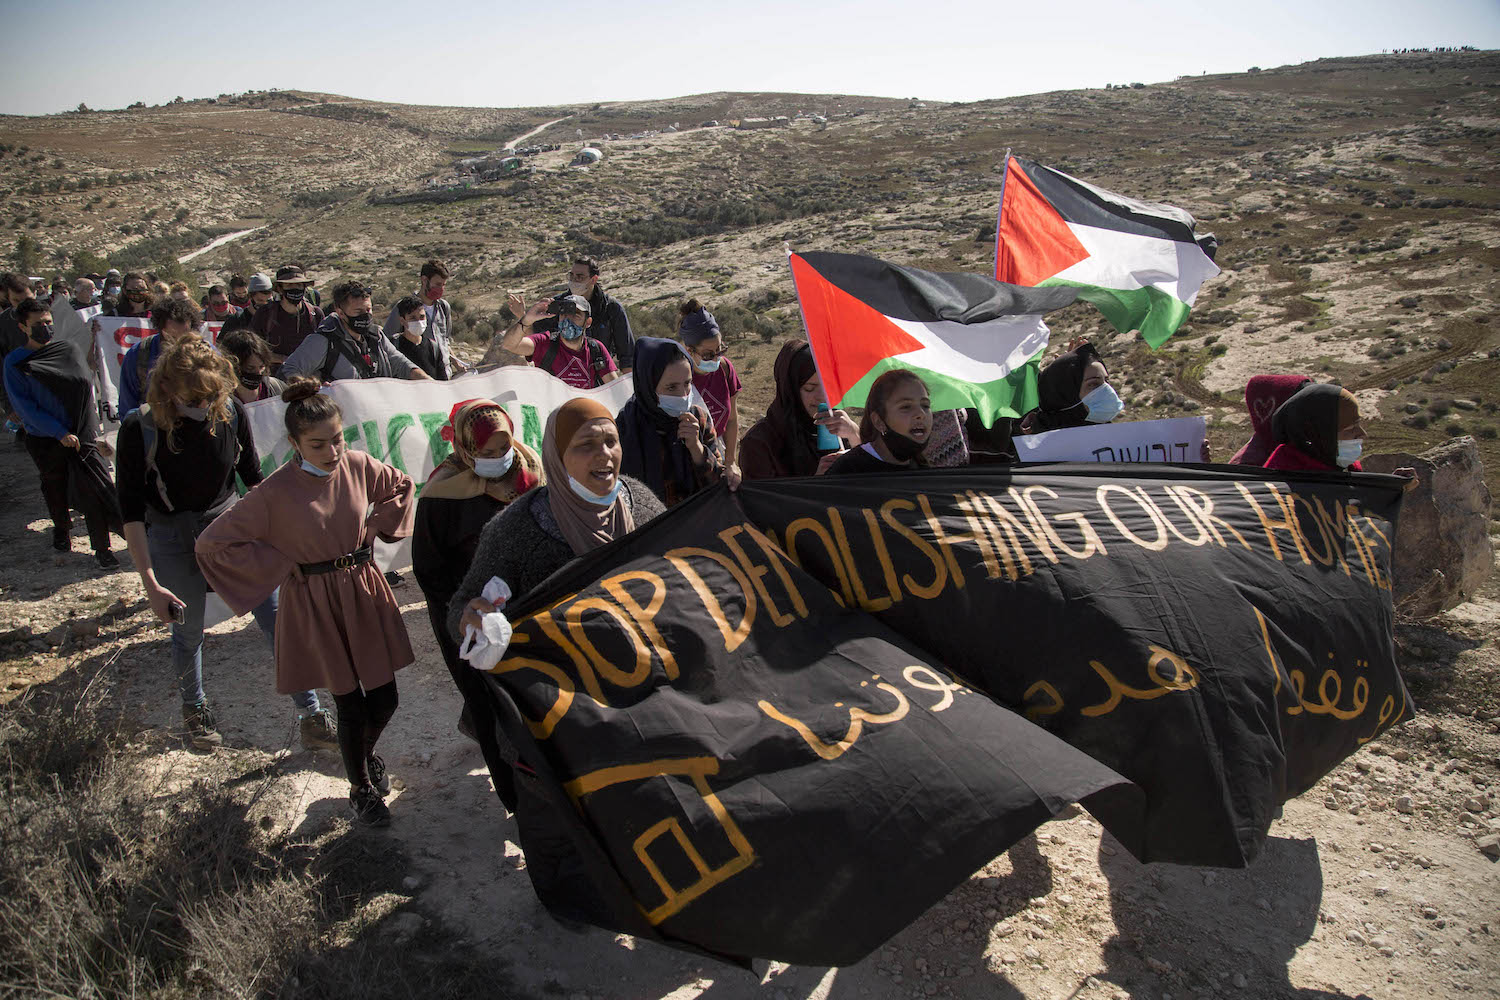 Palestinians and Israeli activists demonstrate against home demolitions and settler violence in the village of Al-Rakiz, South Hebron Hills, West Bank, January 8, 2021. (Keren Manor/Activestills.org)